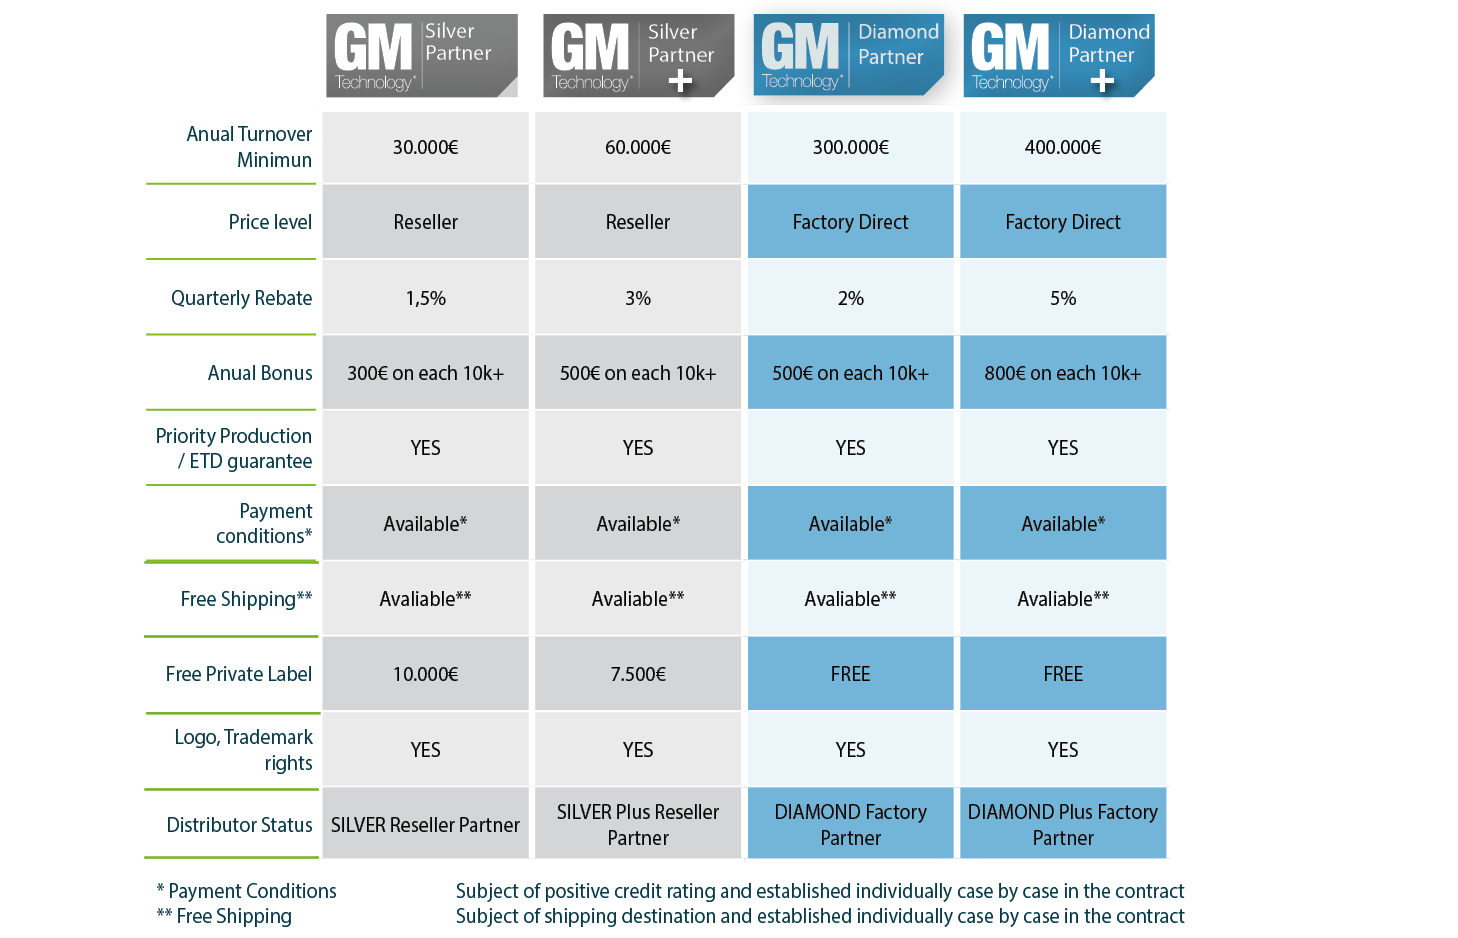 GM Technology introduces two new partner program levels to its highly succesful partner program